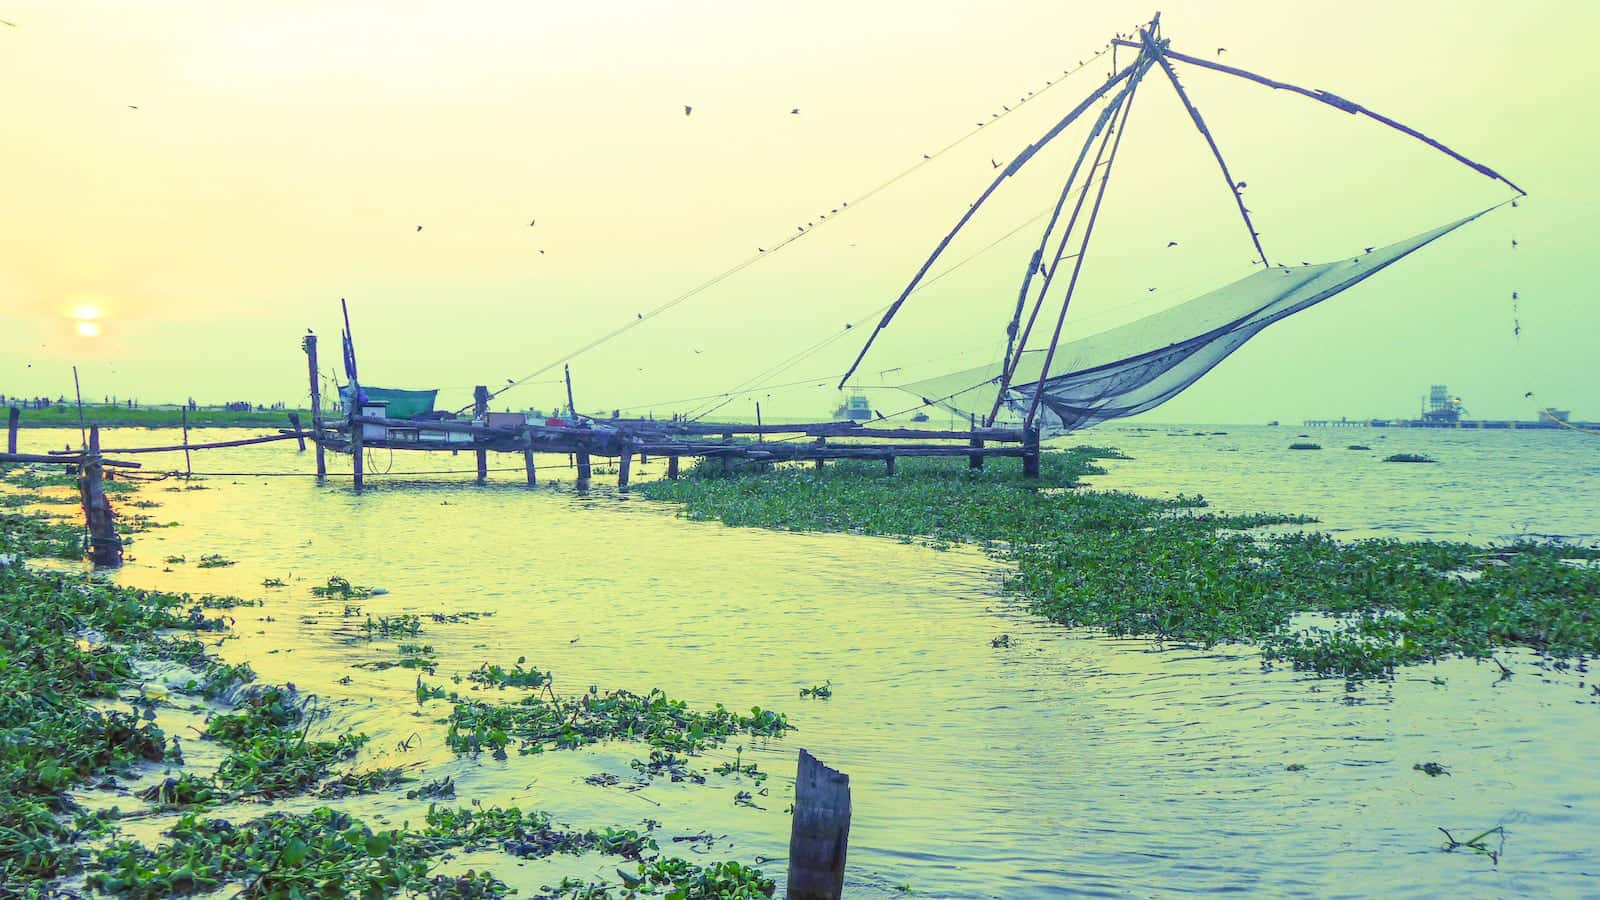 Chinese fishing nets at Kochi old port at sunset